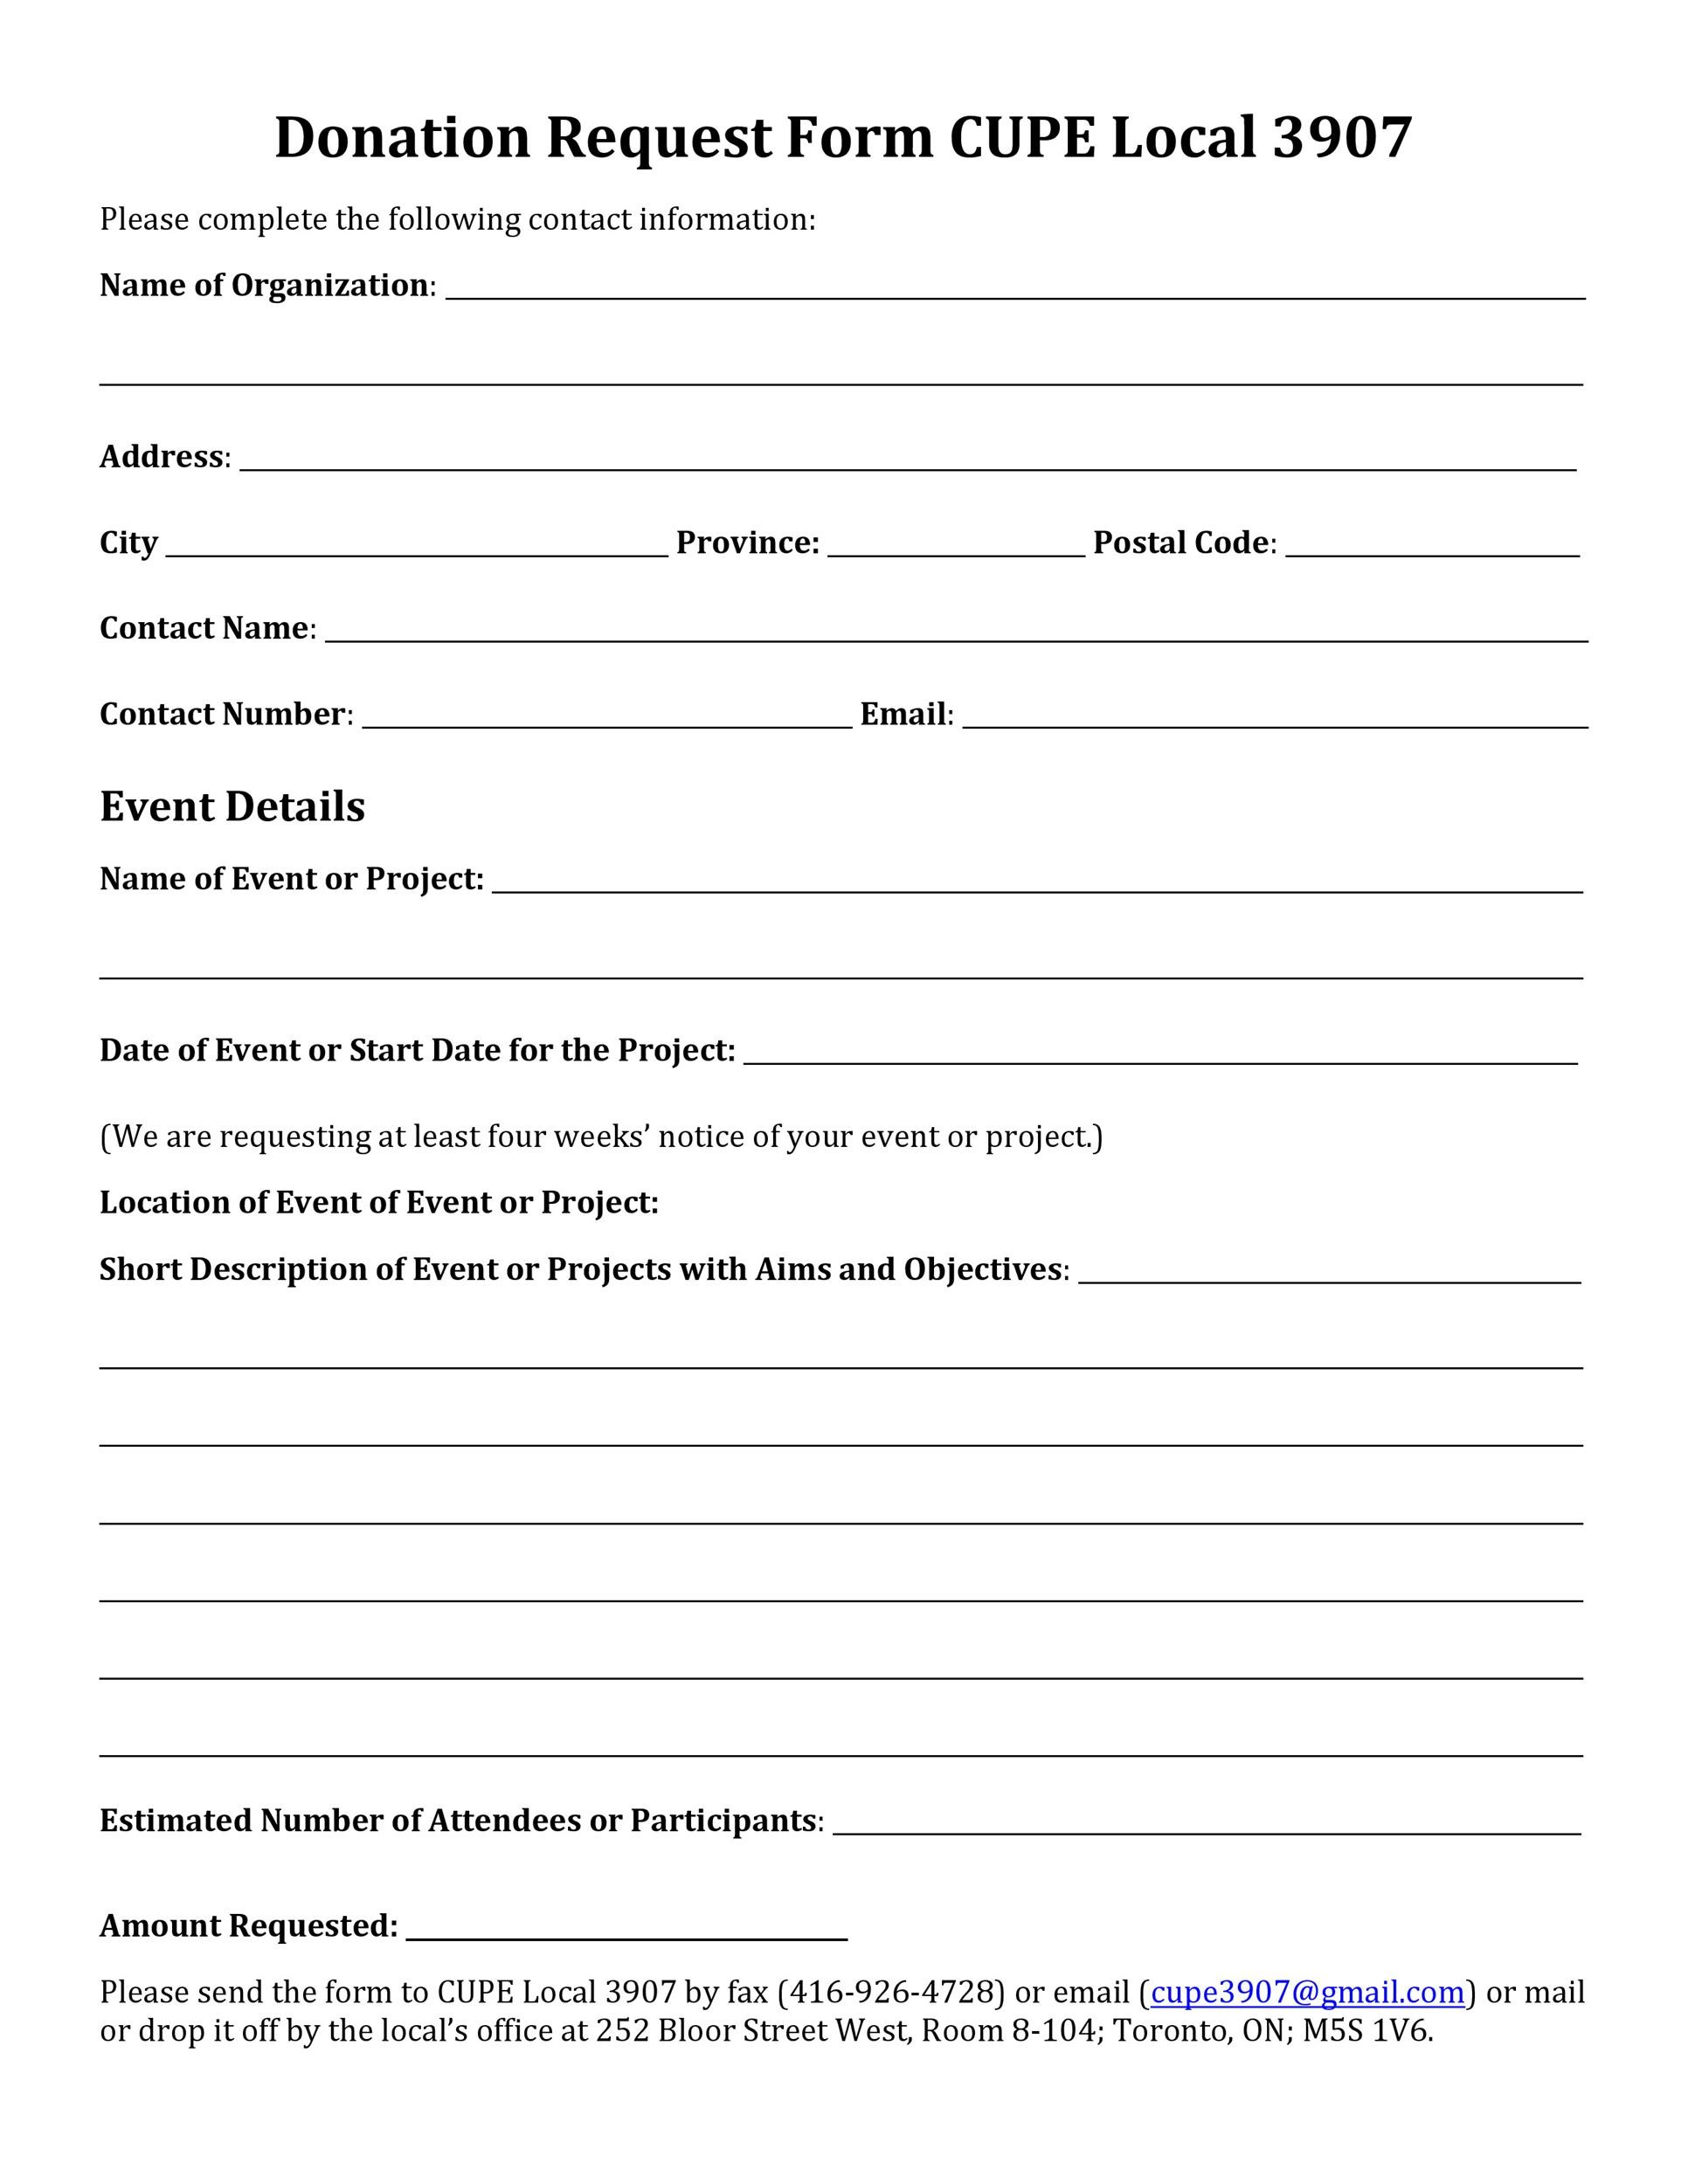 Donation Request Forms Template  Template